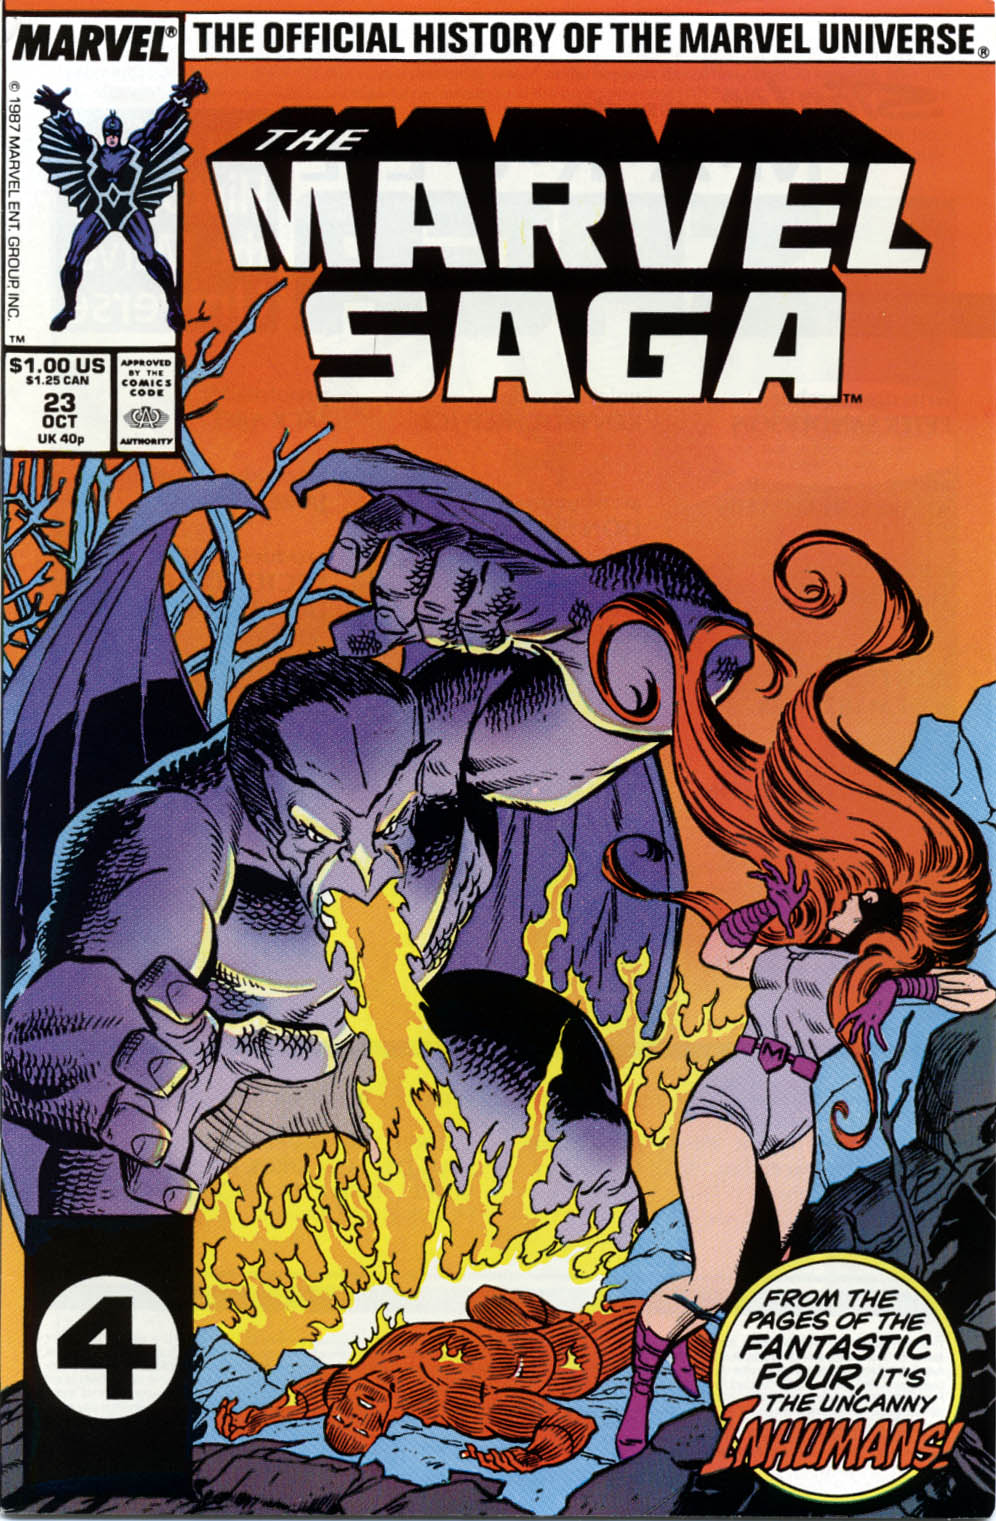 Marvel Saga: The Official History of the Marvel Universe 23 Page 1